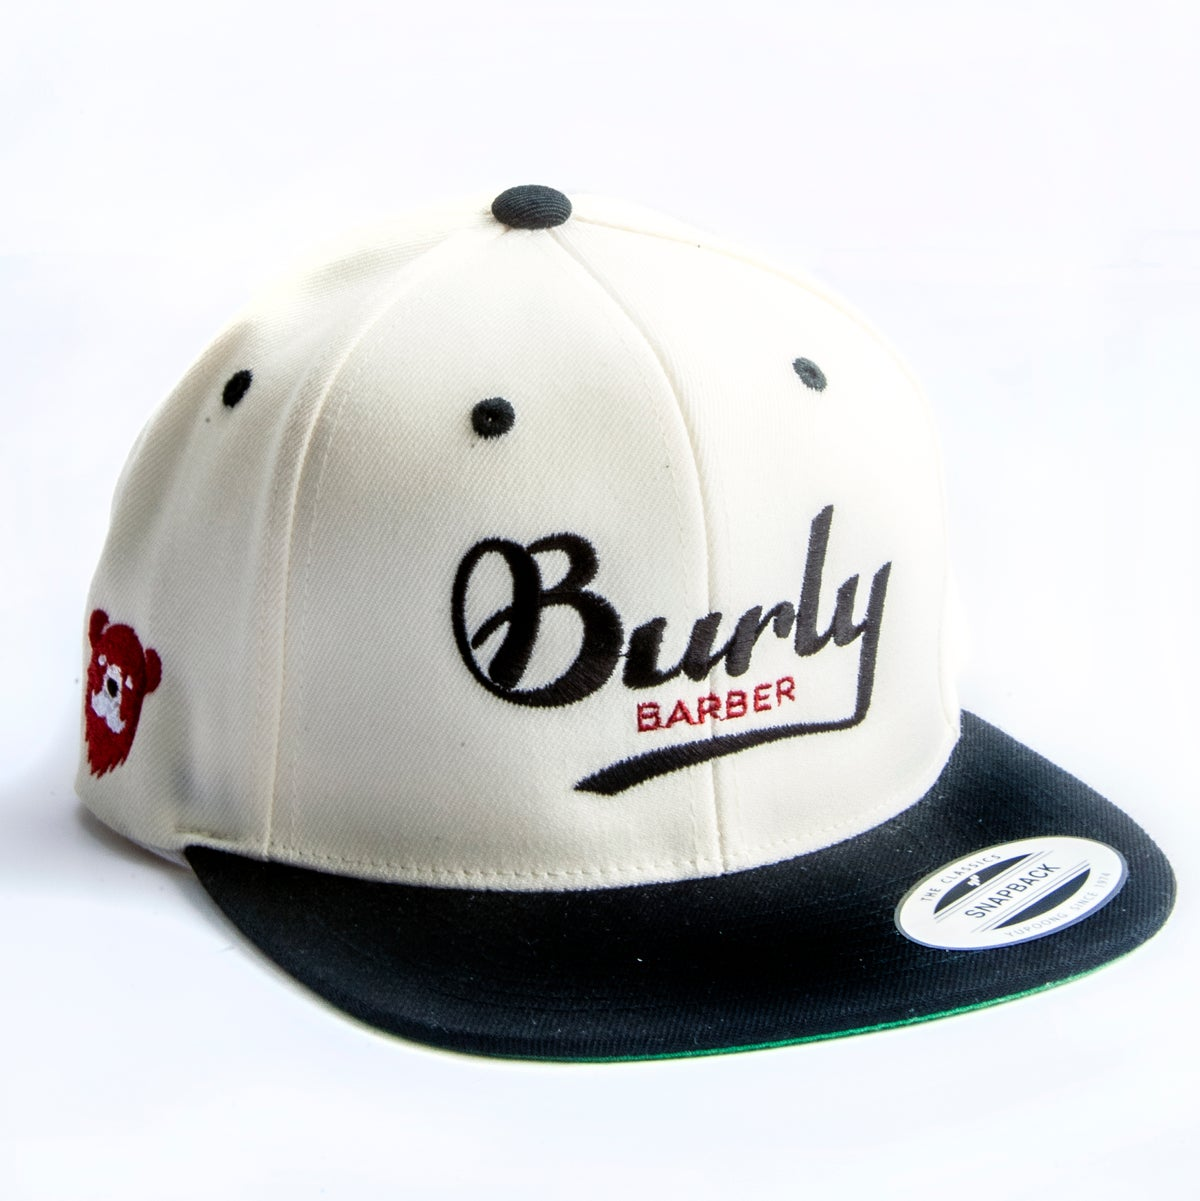 Burly Barber Cap - Natural w/ Black Brim